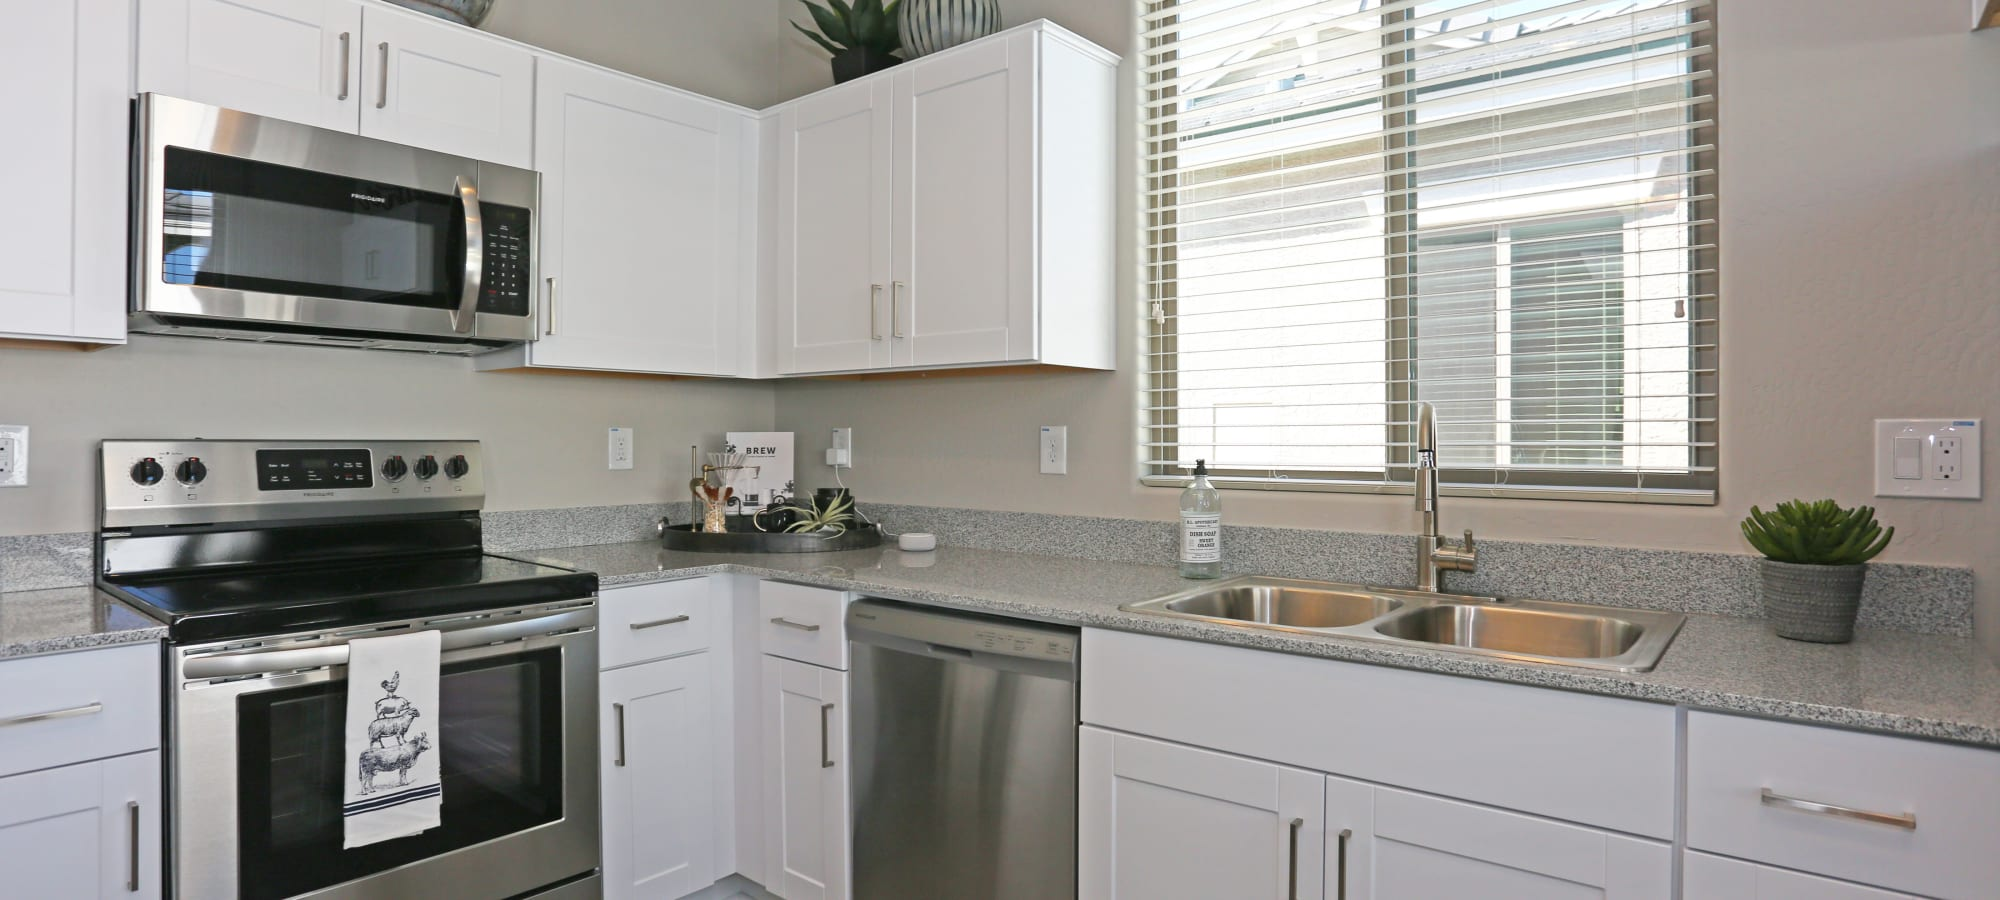 White cabinetry in the kitchen of a model home at Christopher Todd Communities At Estrella Commons in Goodyear, Arizona